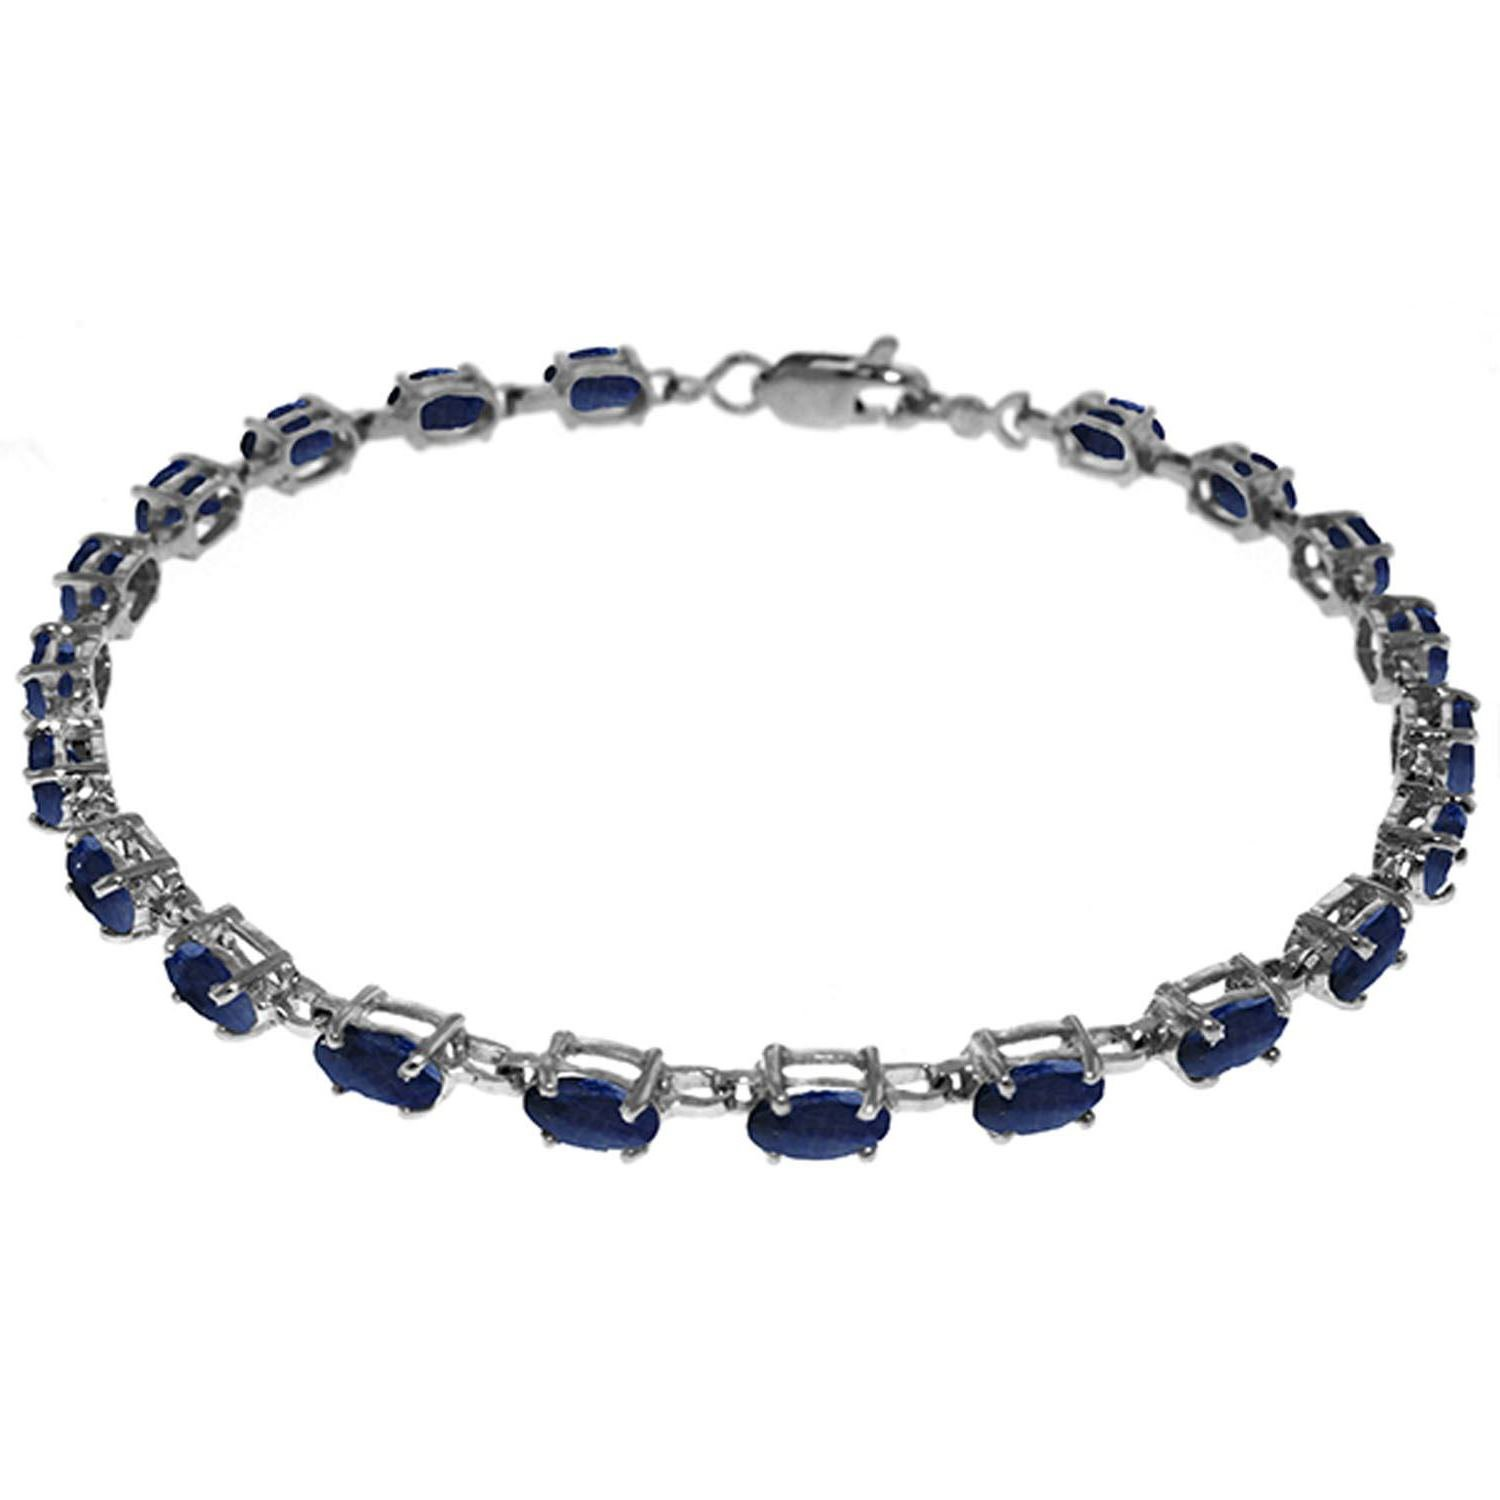 8 Carats Natural Oval Sapphire Gemstone Tennis Bracelet 14K Solid White Gold 3561-W